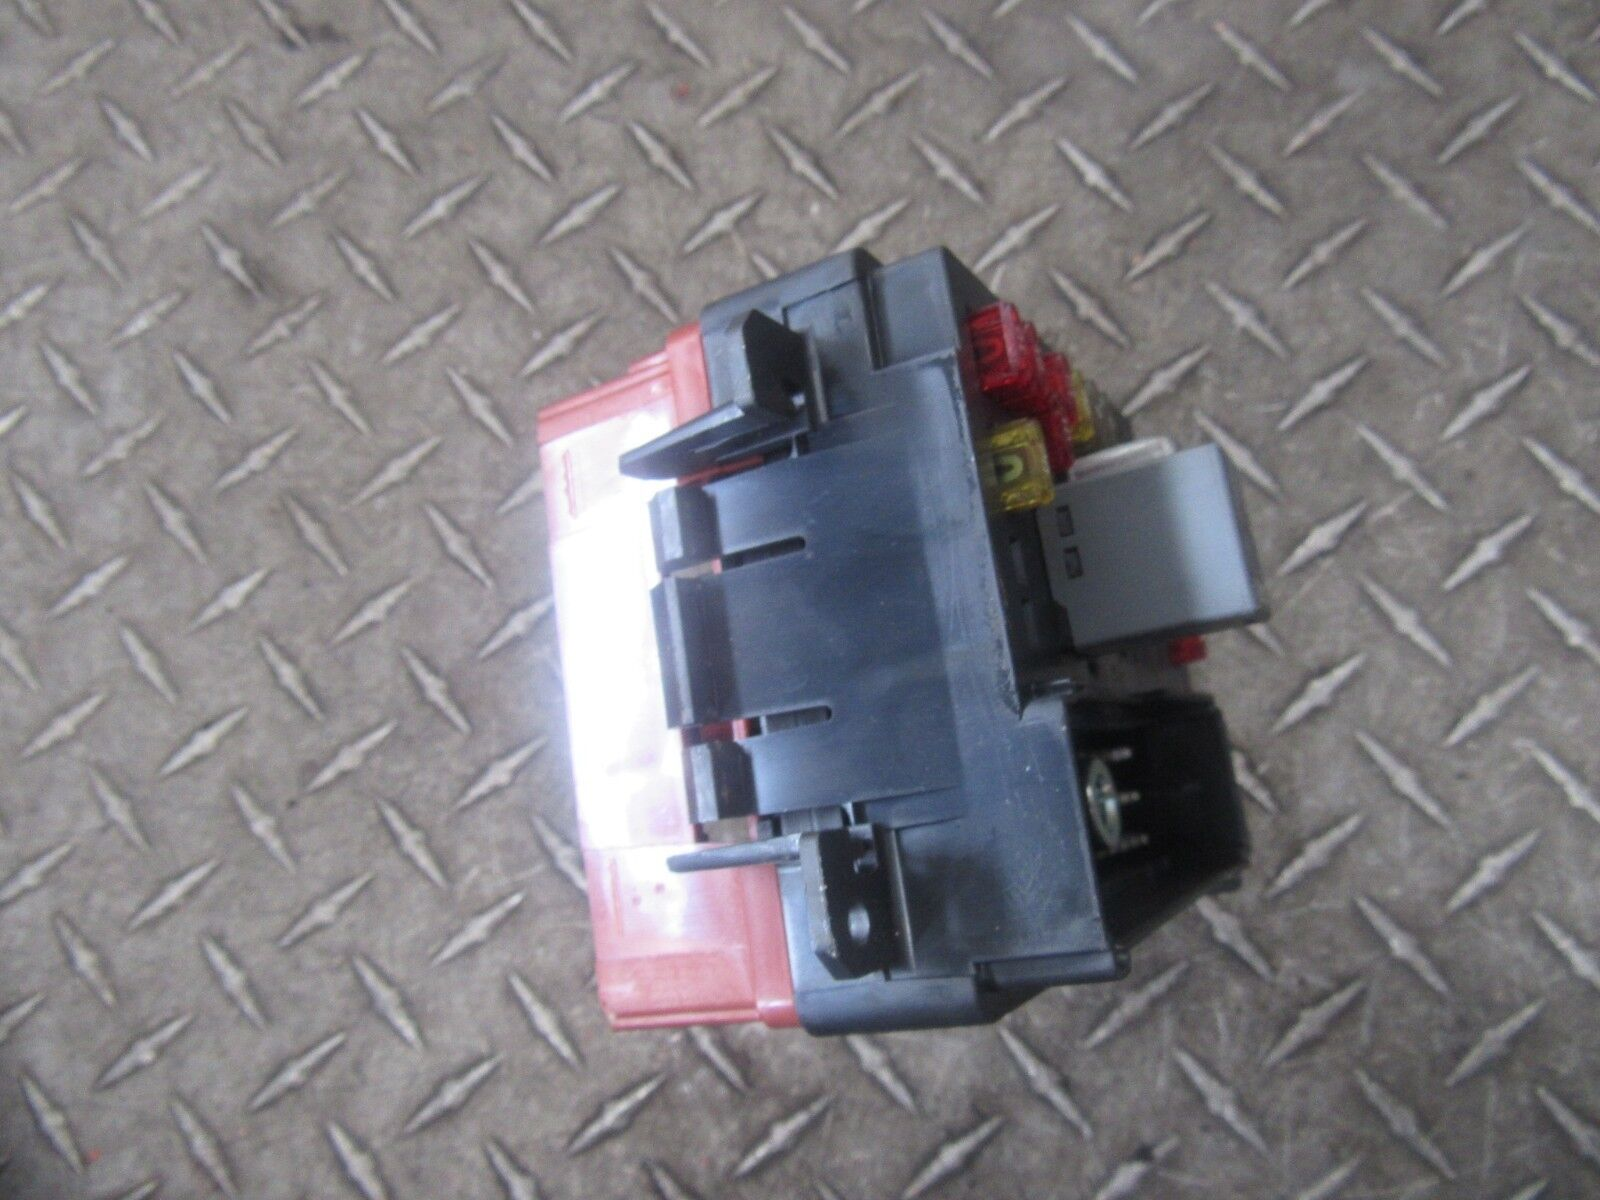 Used Oldsmobile Exterior Parts For Sale Page 4 Olds 1991 Fuse Box 1999 Alero Interior 34l 6cyl